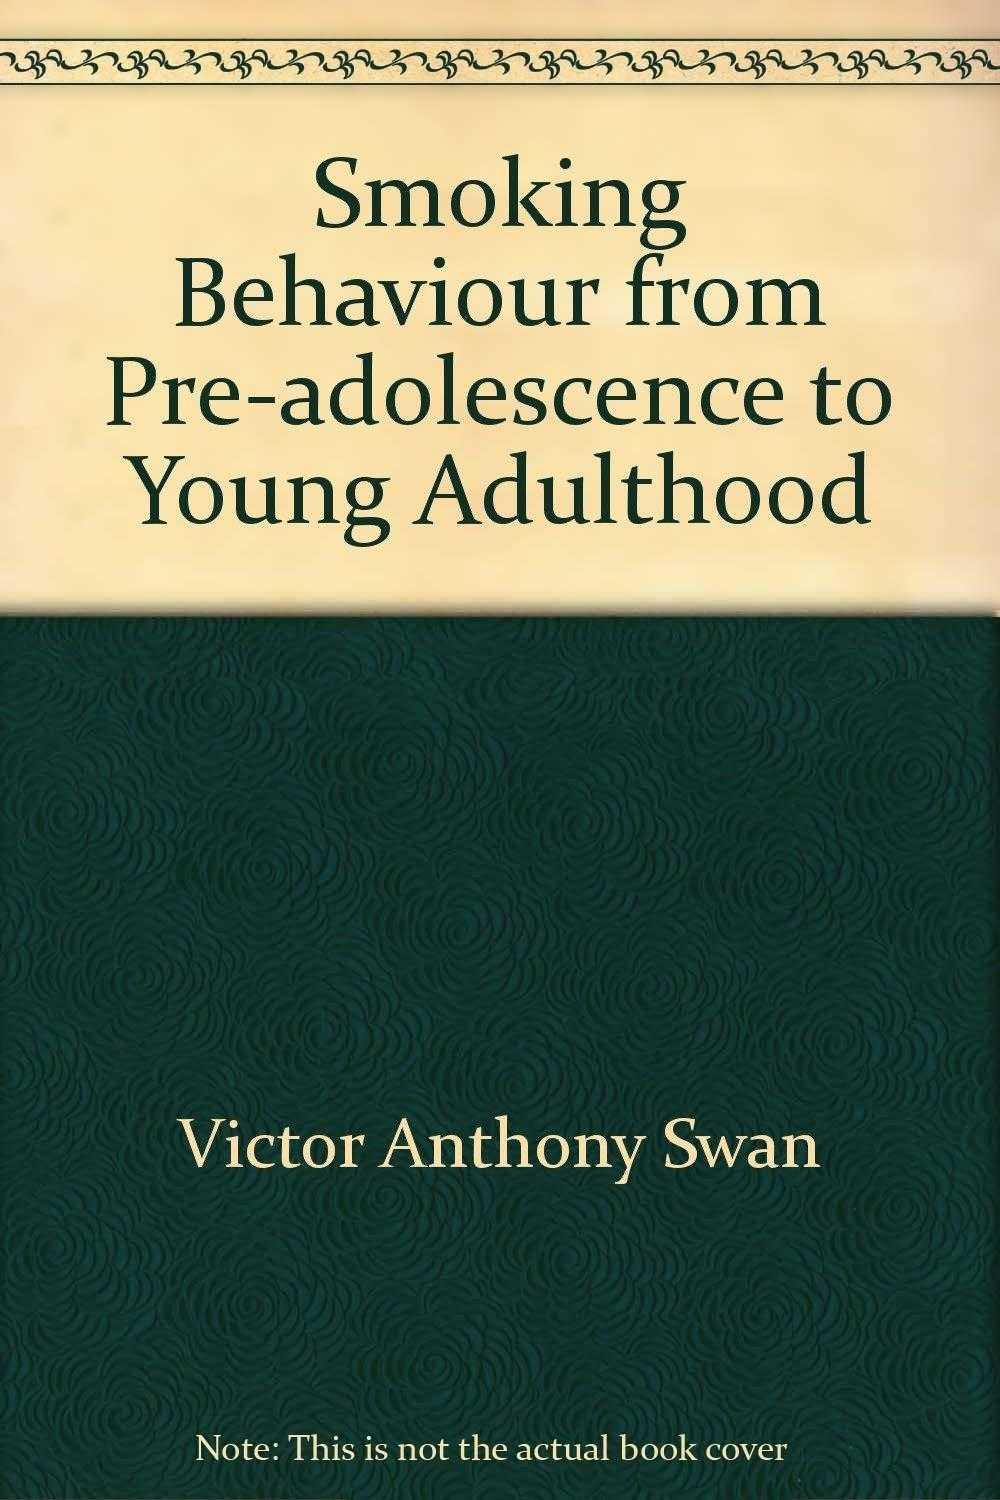 SWAN, VICTOR ANTHONY - Smoking Behaviour from Pre-adolescence to Young Adulthood